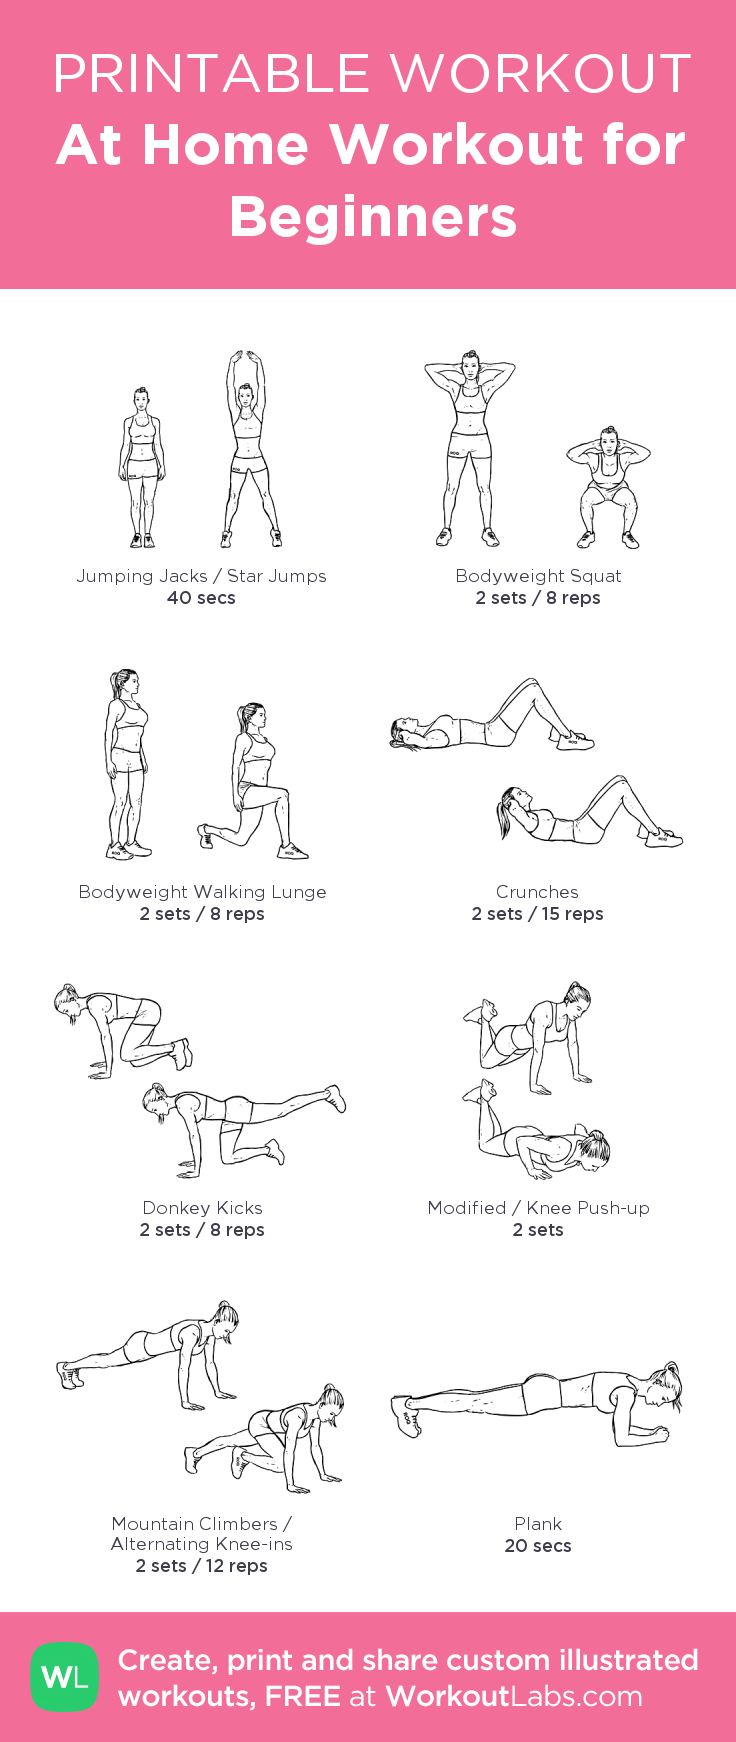 At Home Workout For Beginners My Custom Workout Created At Workoutlabs Com Click Through To Beginner Workout At Home Workout For Beginners At Home Workouts